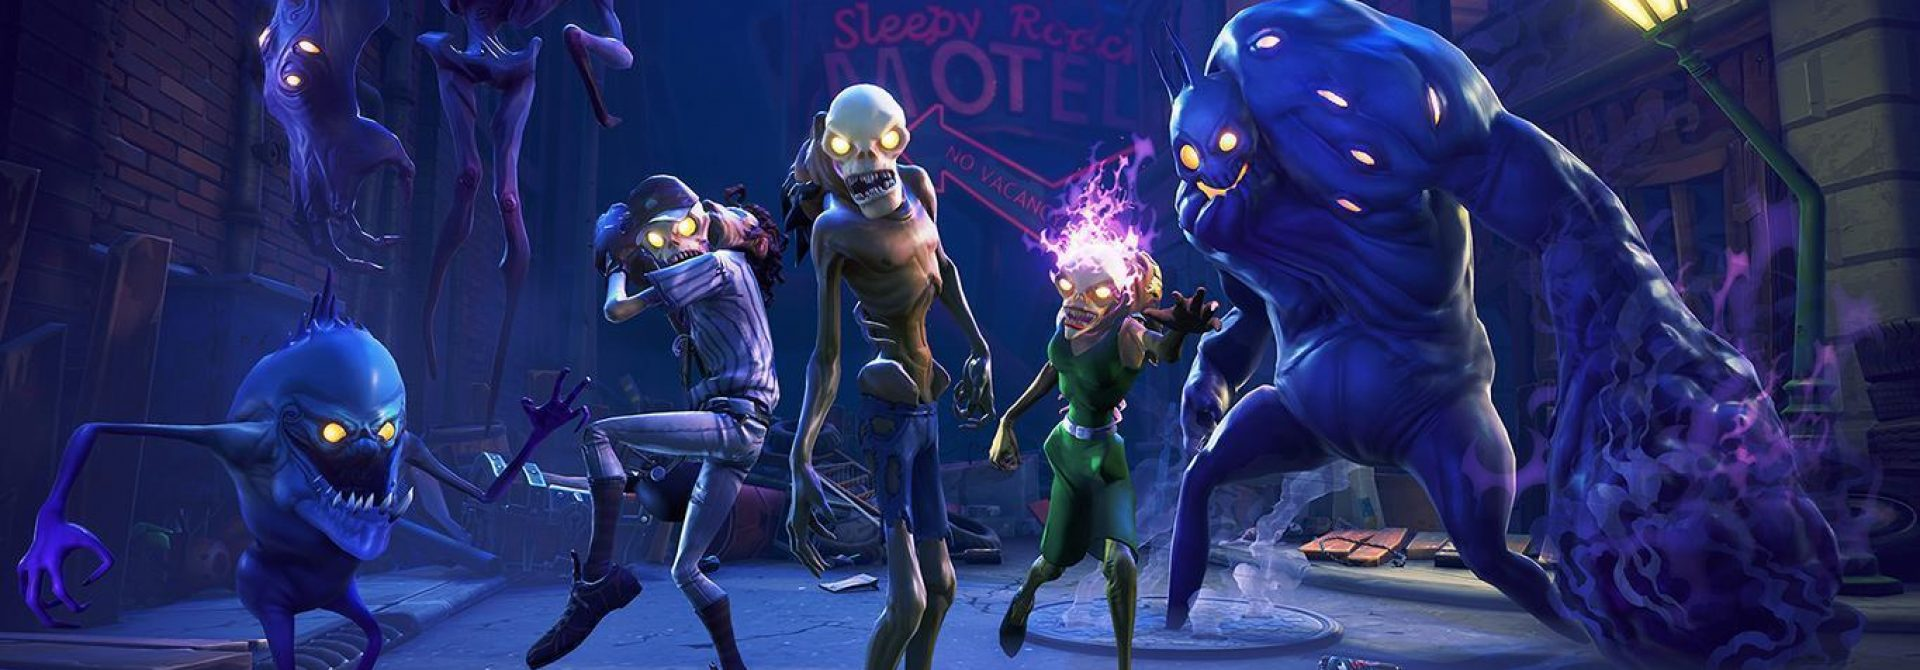 Fortnite Crossplay Was A Mistake According To Epic Games